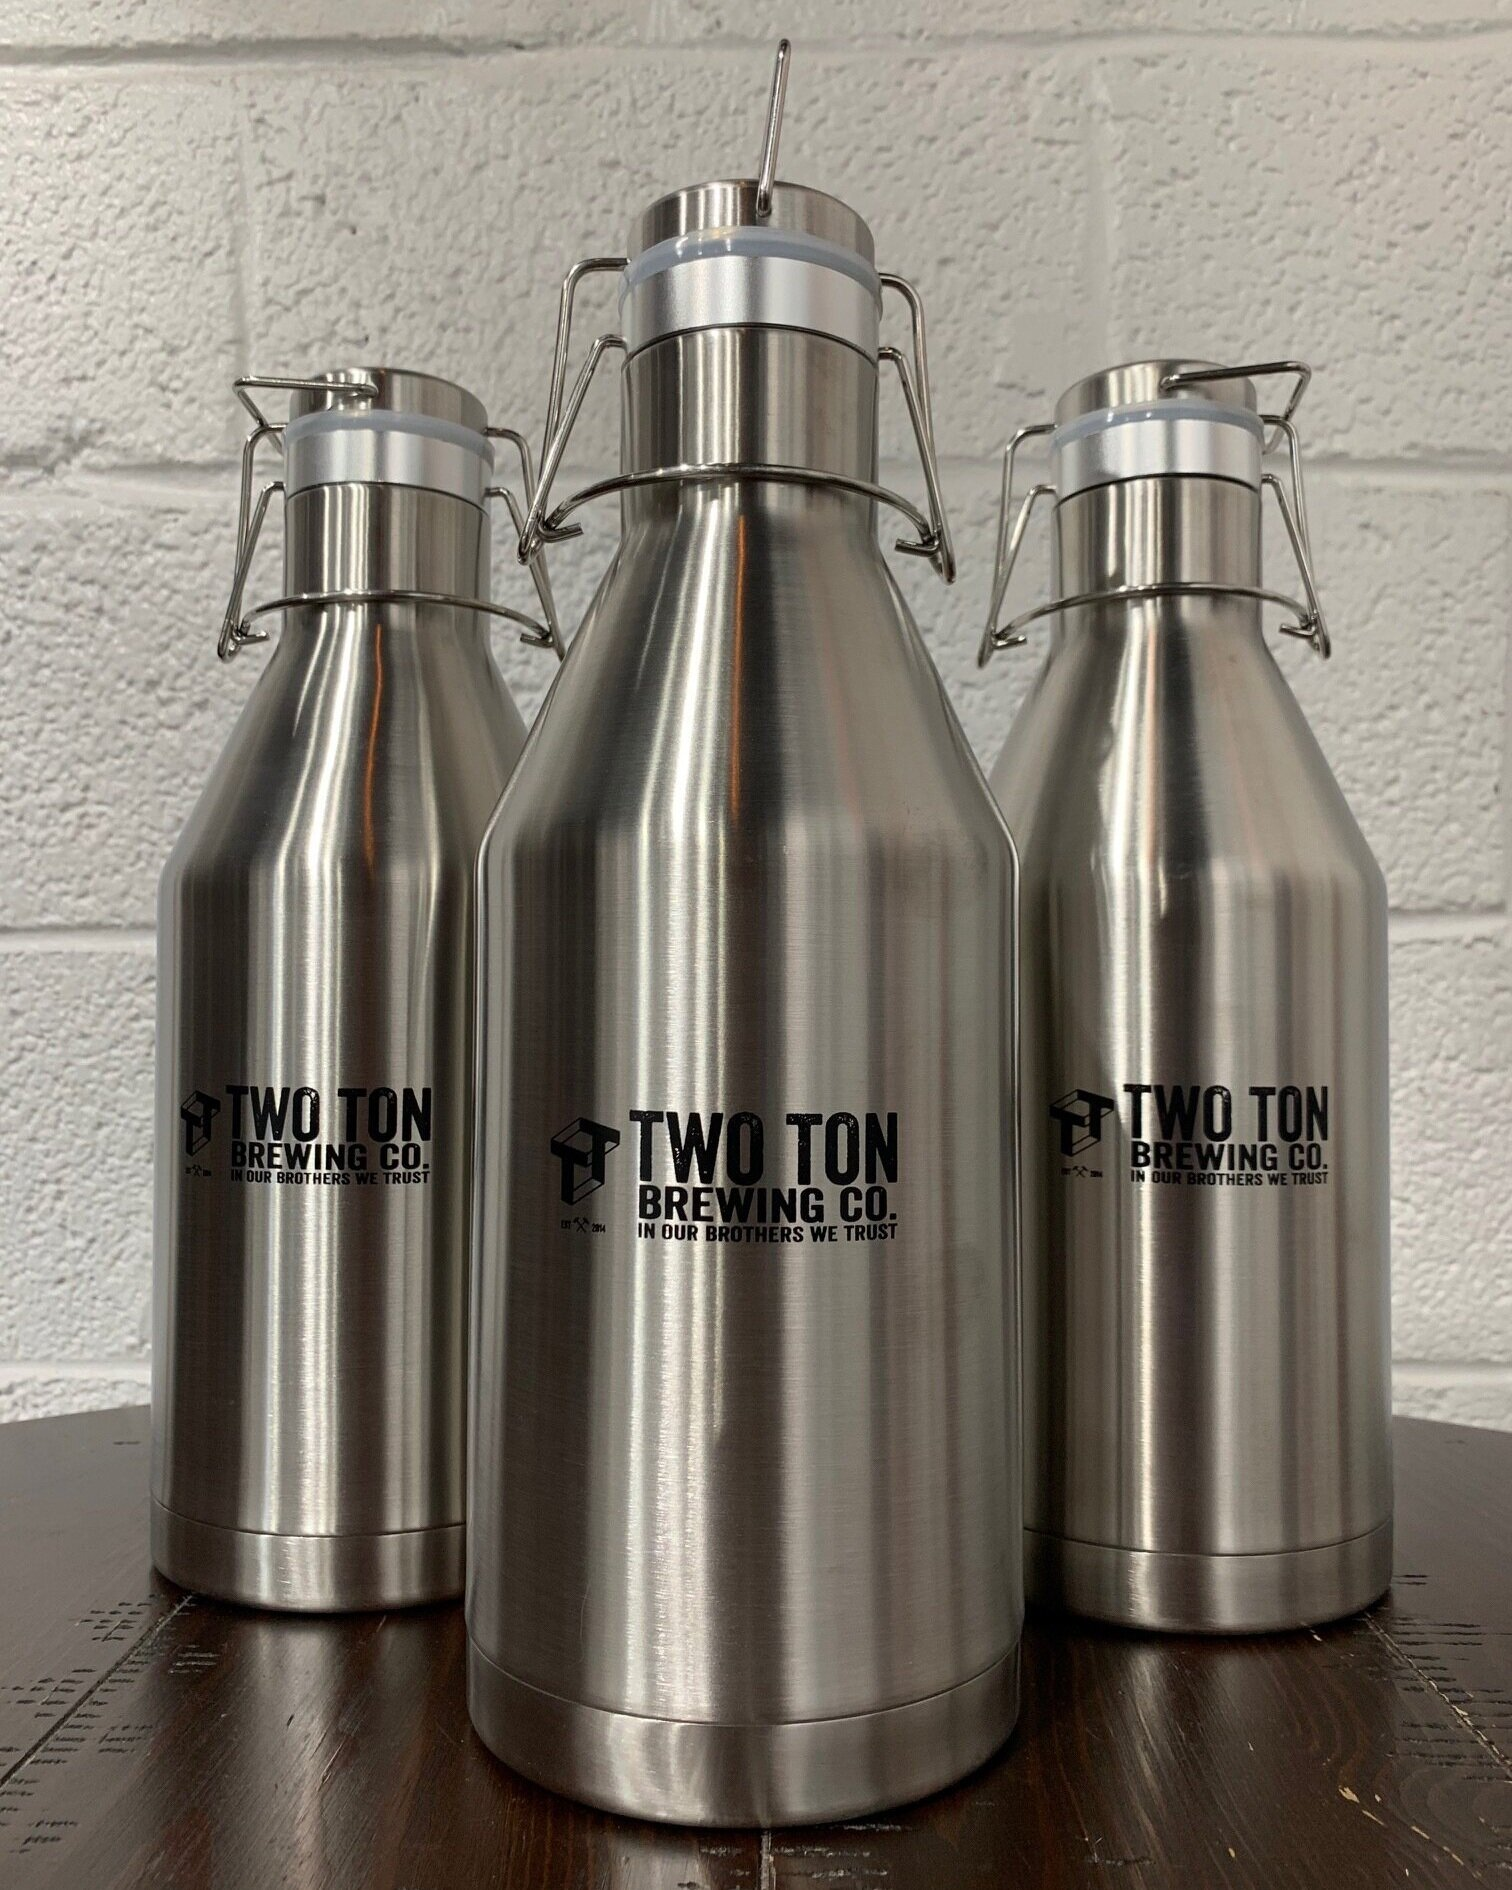 Two Ton Growler (Filled)    $50.00   Double-walled stainless steel branded growler with swing-top lid to keep your beers cold and fresh longer! 64oz capacity. Comes filled with your selection from the menu board when you purchase.